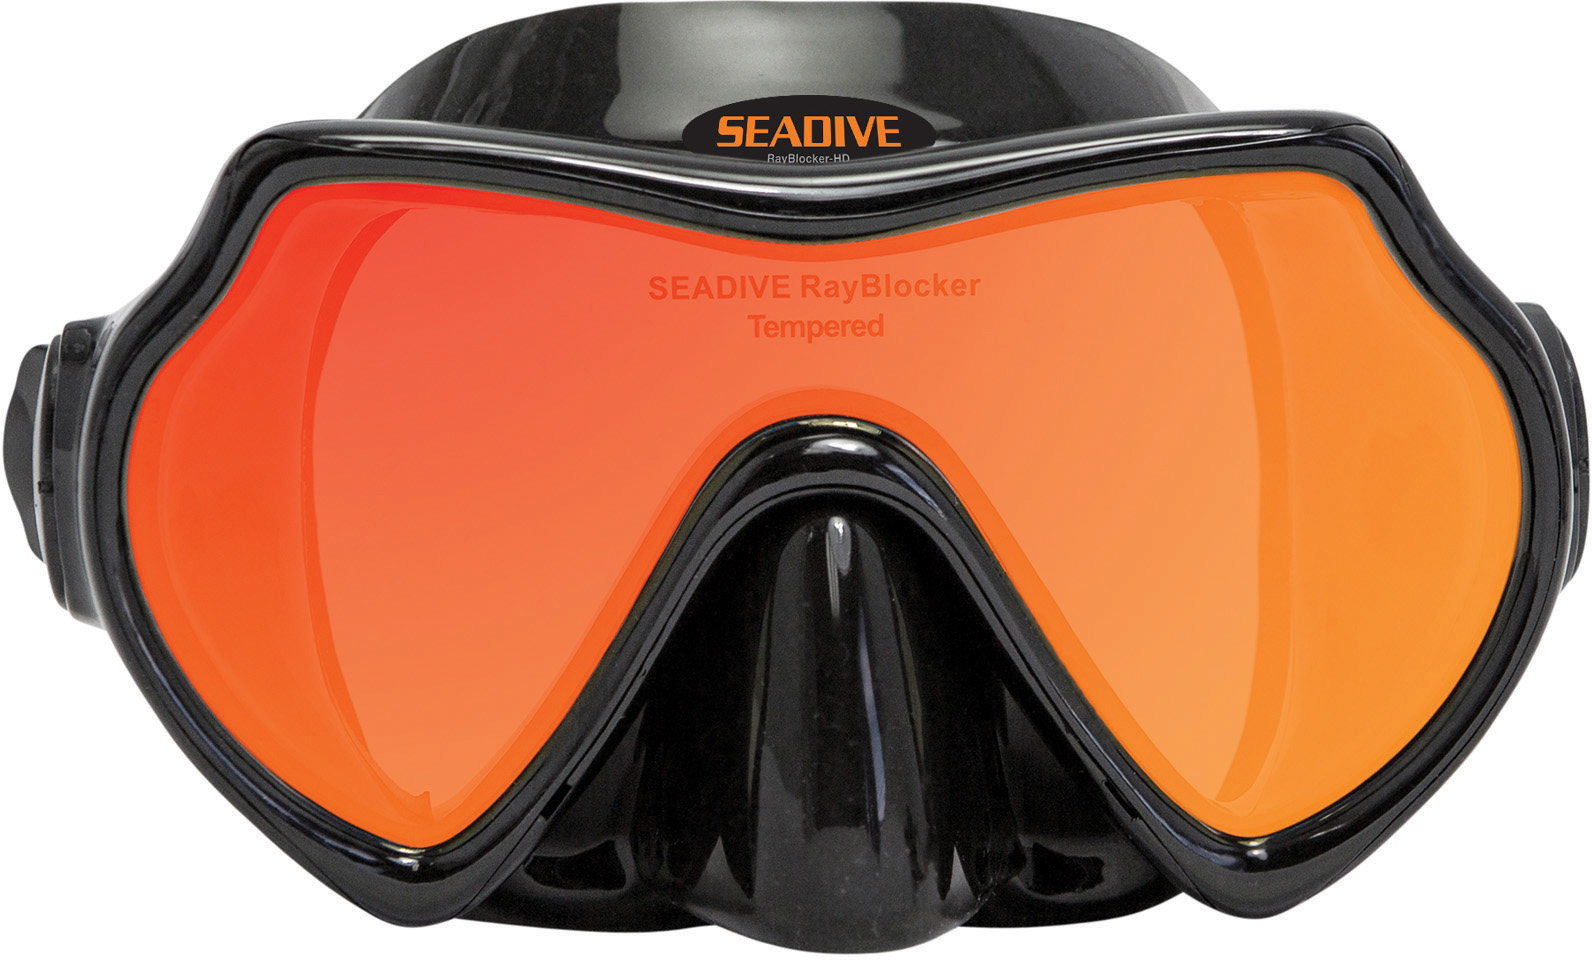 SeaDive EagleEye RayBlocker HD Mask with Purge